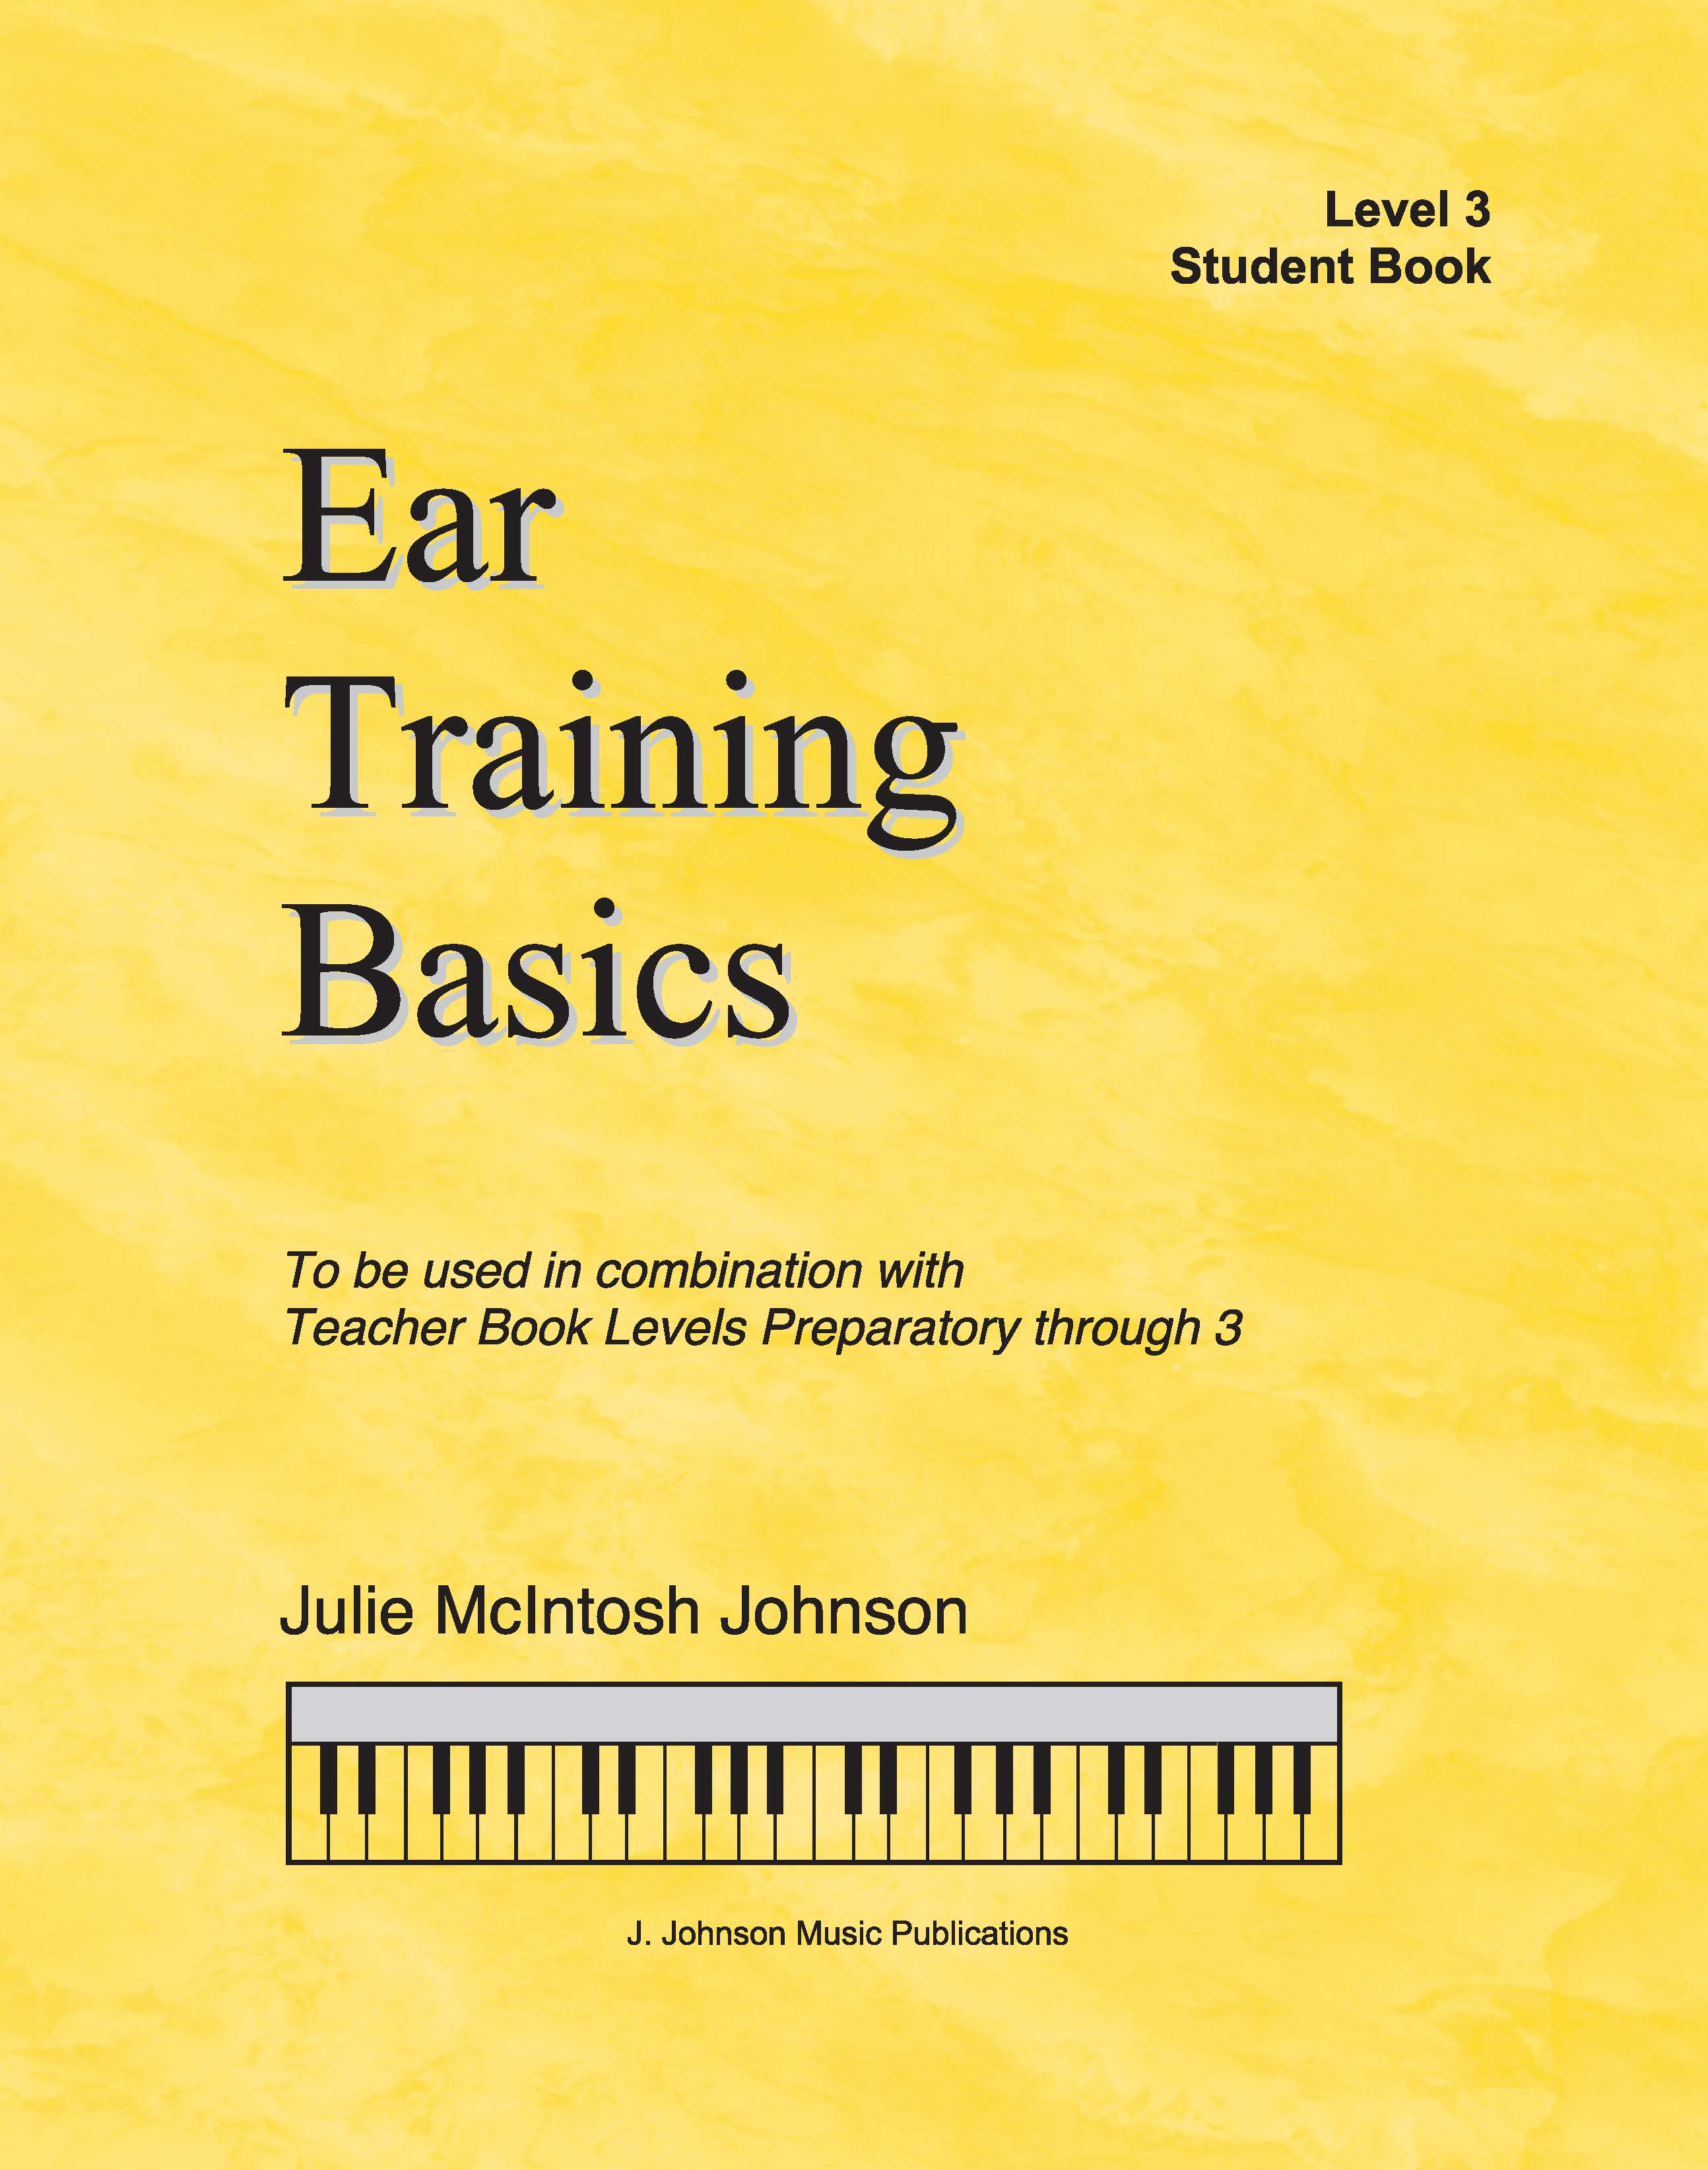 Ear Training Basics Level 3